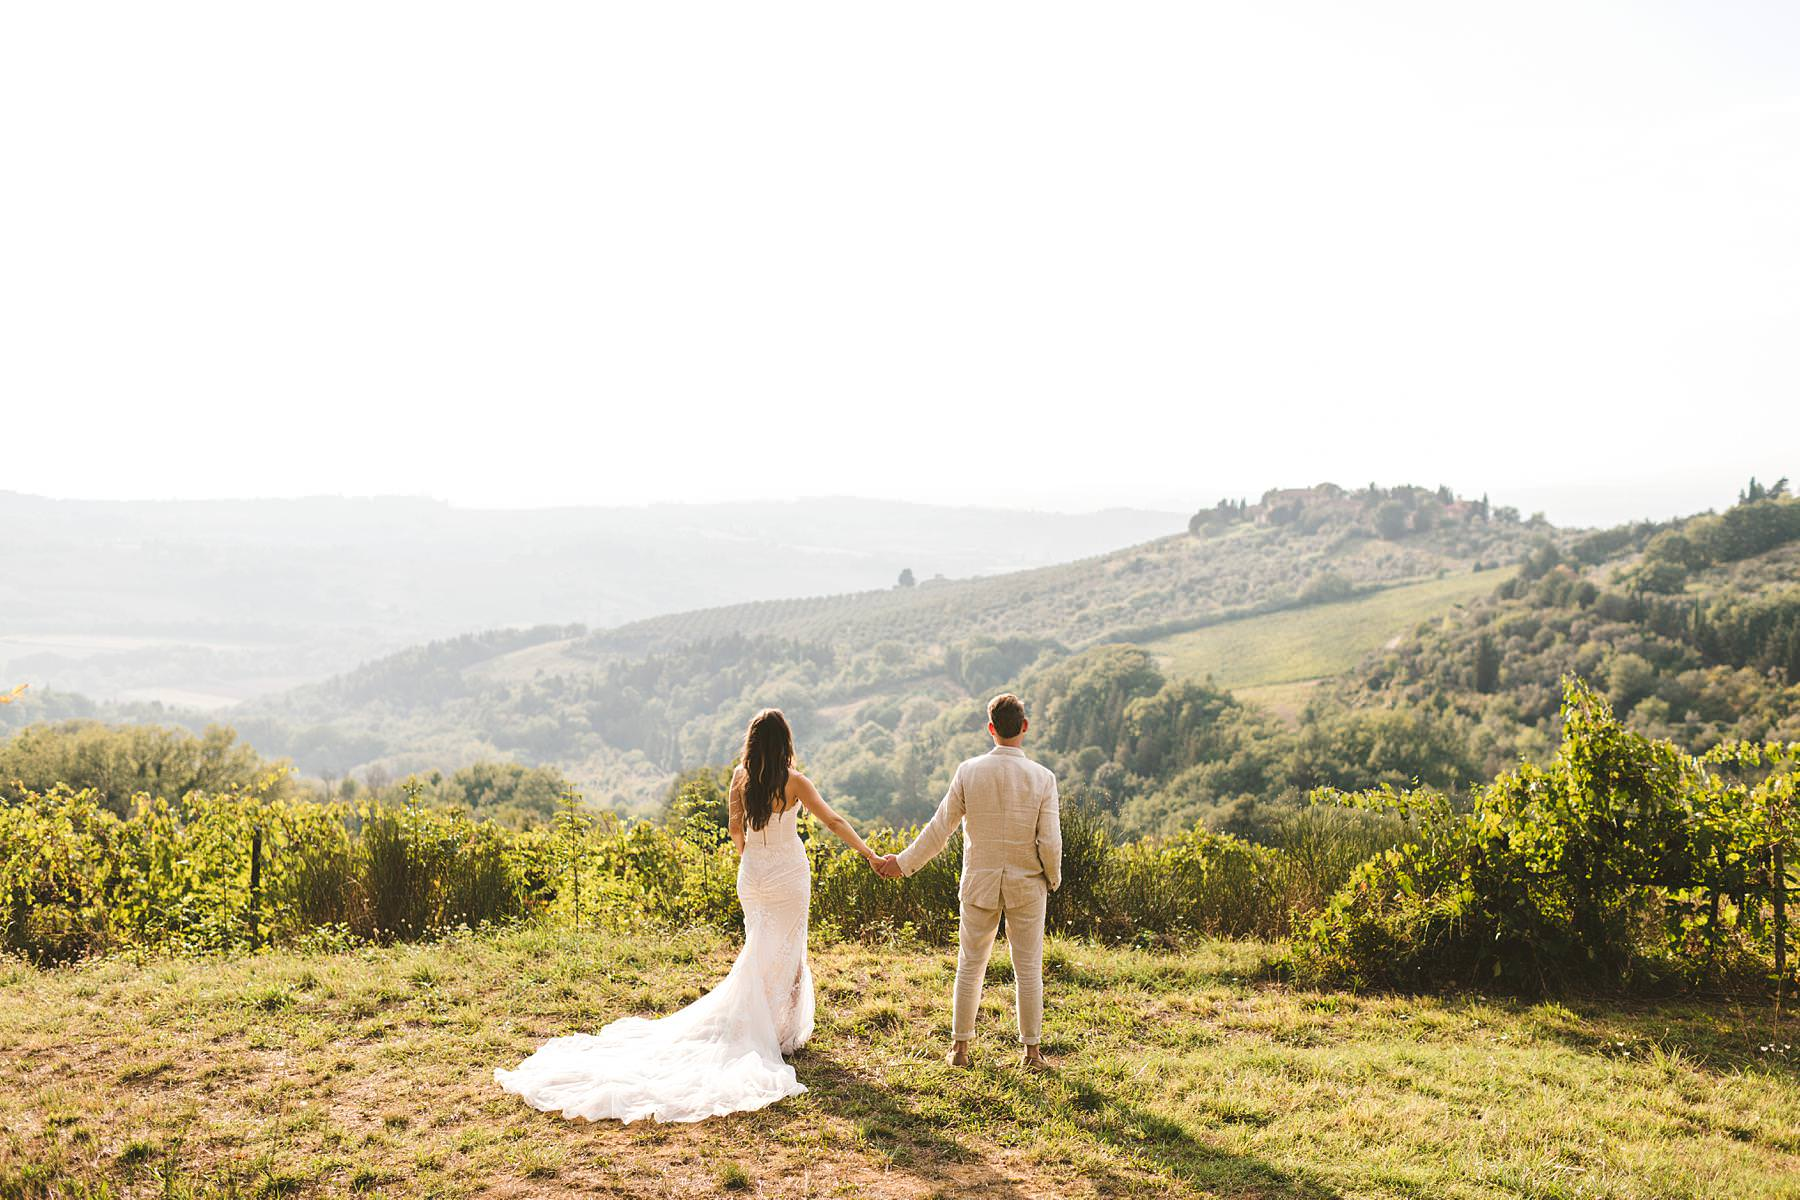 Elegant and beautiful bride and groom wedding photo surrounded by the Chianti countryside of Tuscany at the Villa Il Poggiale historic residence